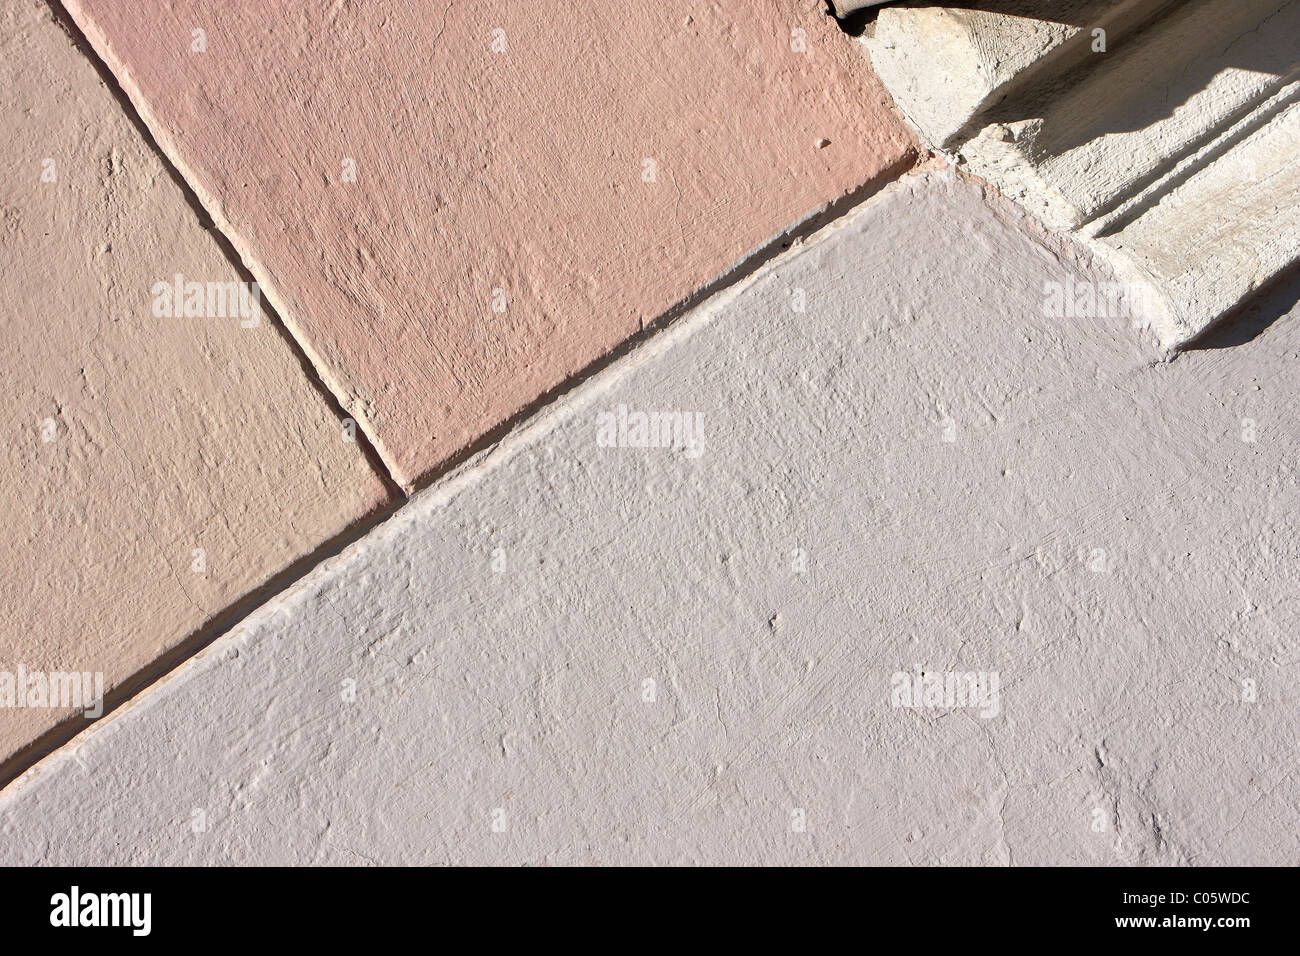 The concrete structure consisting of plaster - Stock Image